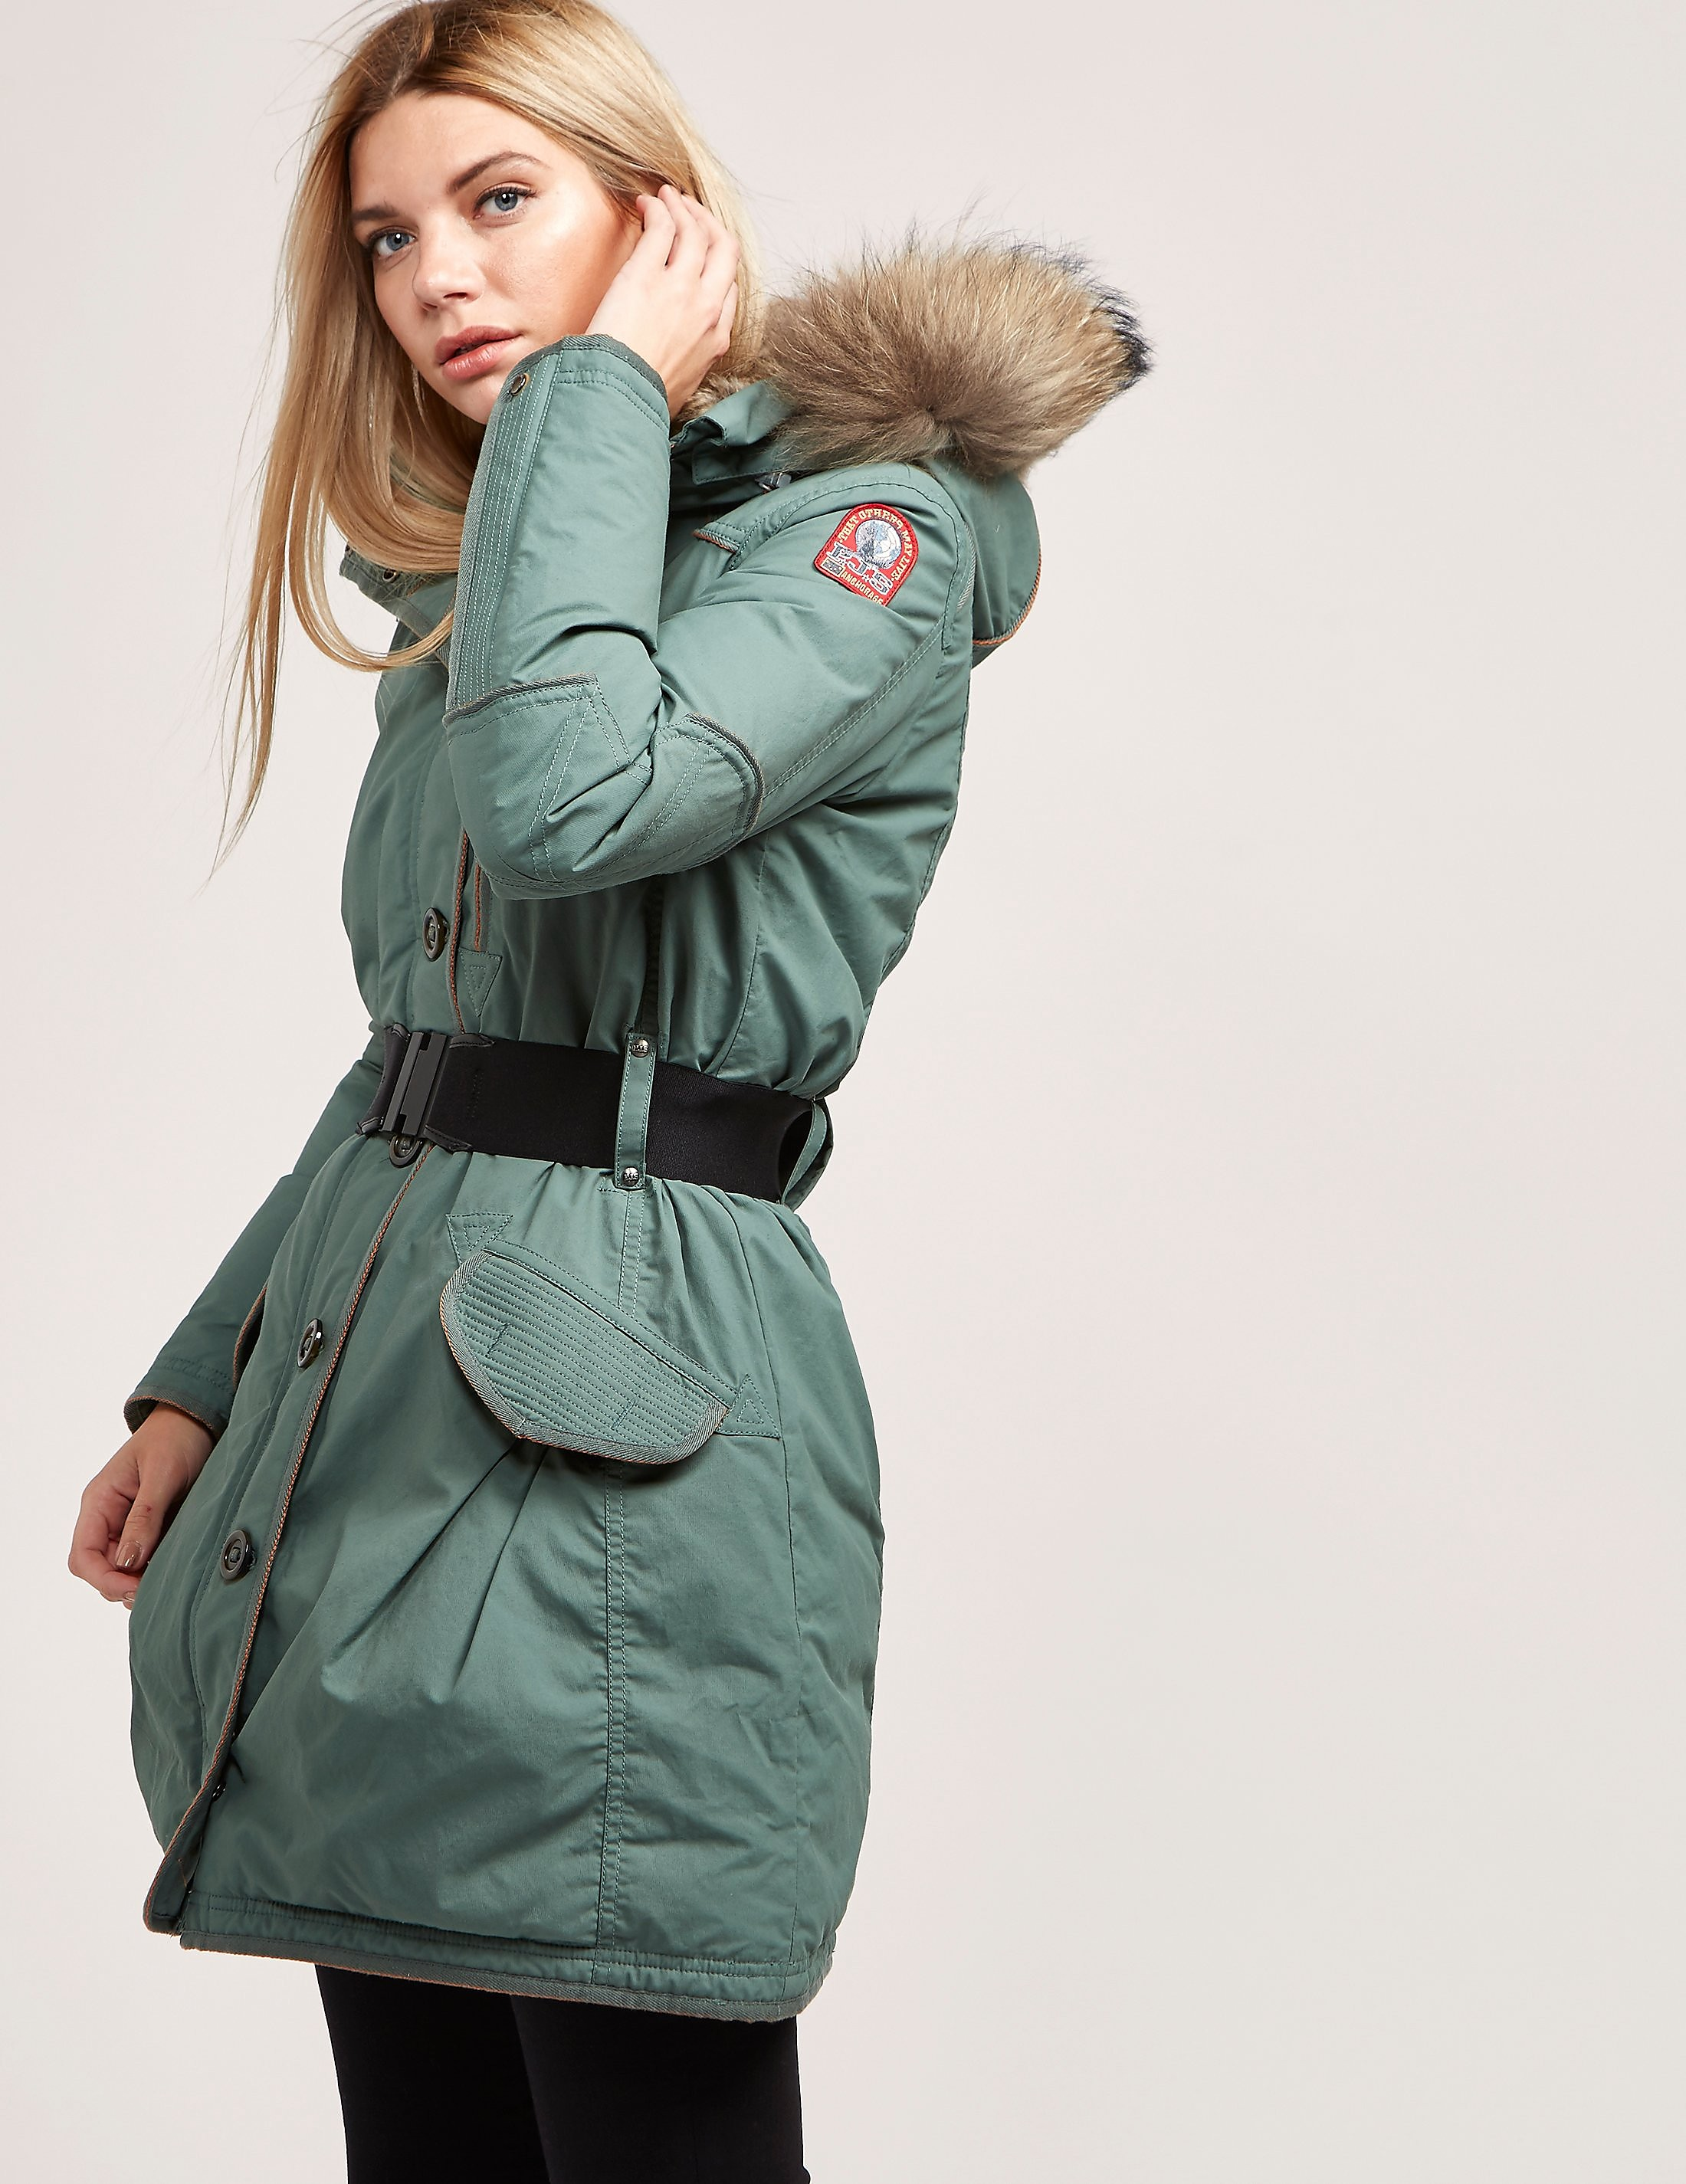 Parajumpers Borah Padded Jacket - Online Exclusive